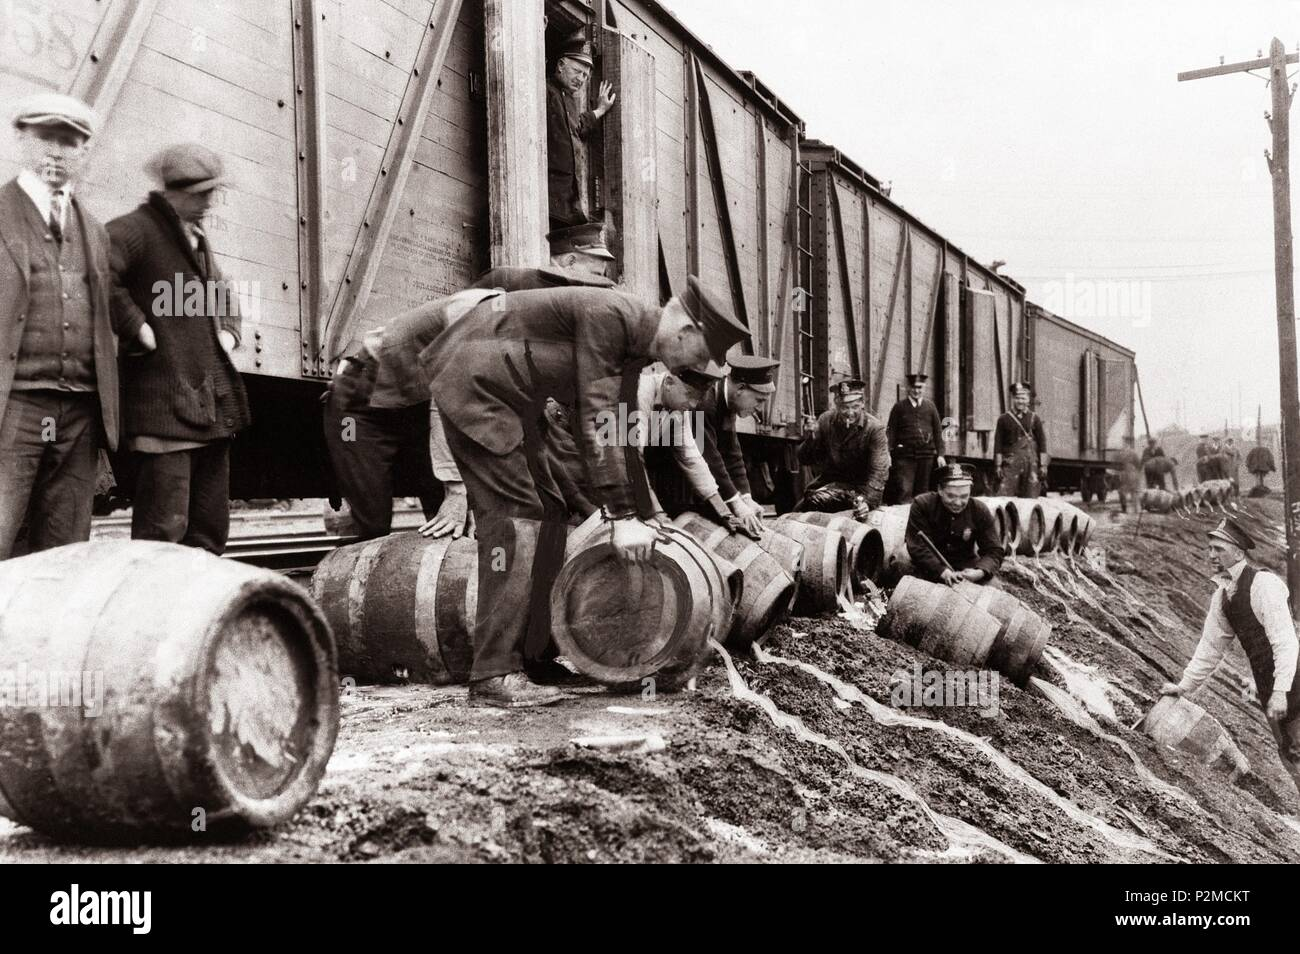 A view of the local police dumping illegal booze (Beer Barrels) off a train in Scranton, Pennsylvania during the prohibition years of 1920 to 1933. The Wilkes Barre, Scranton region of North Eastern Pa. was  the center of the Anthracite coal mining industry of the United States during the industrial revolution and a hot bed of mob activity during prohibition.Scranton was a hub of illegal liquor transportation during Prohibition.In terms of bootlegging,Scranton was full of activity.The downtown Scranton area had 147 speakeasies.Not to mention, trains were important for alcohol transportation. Stock Photo